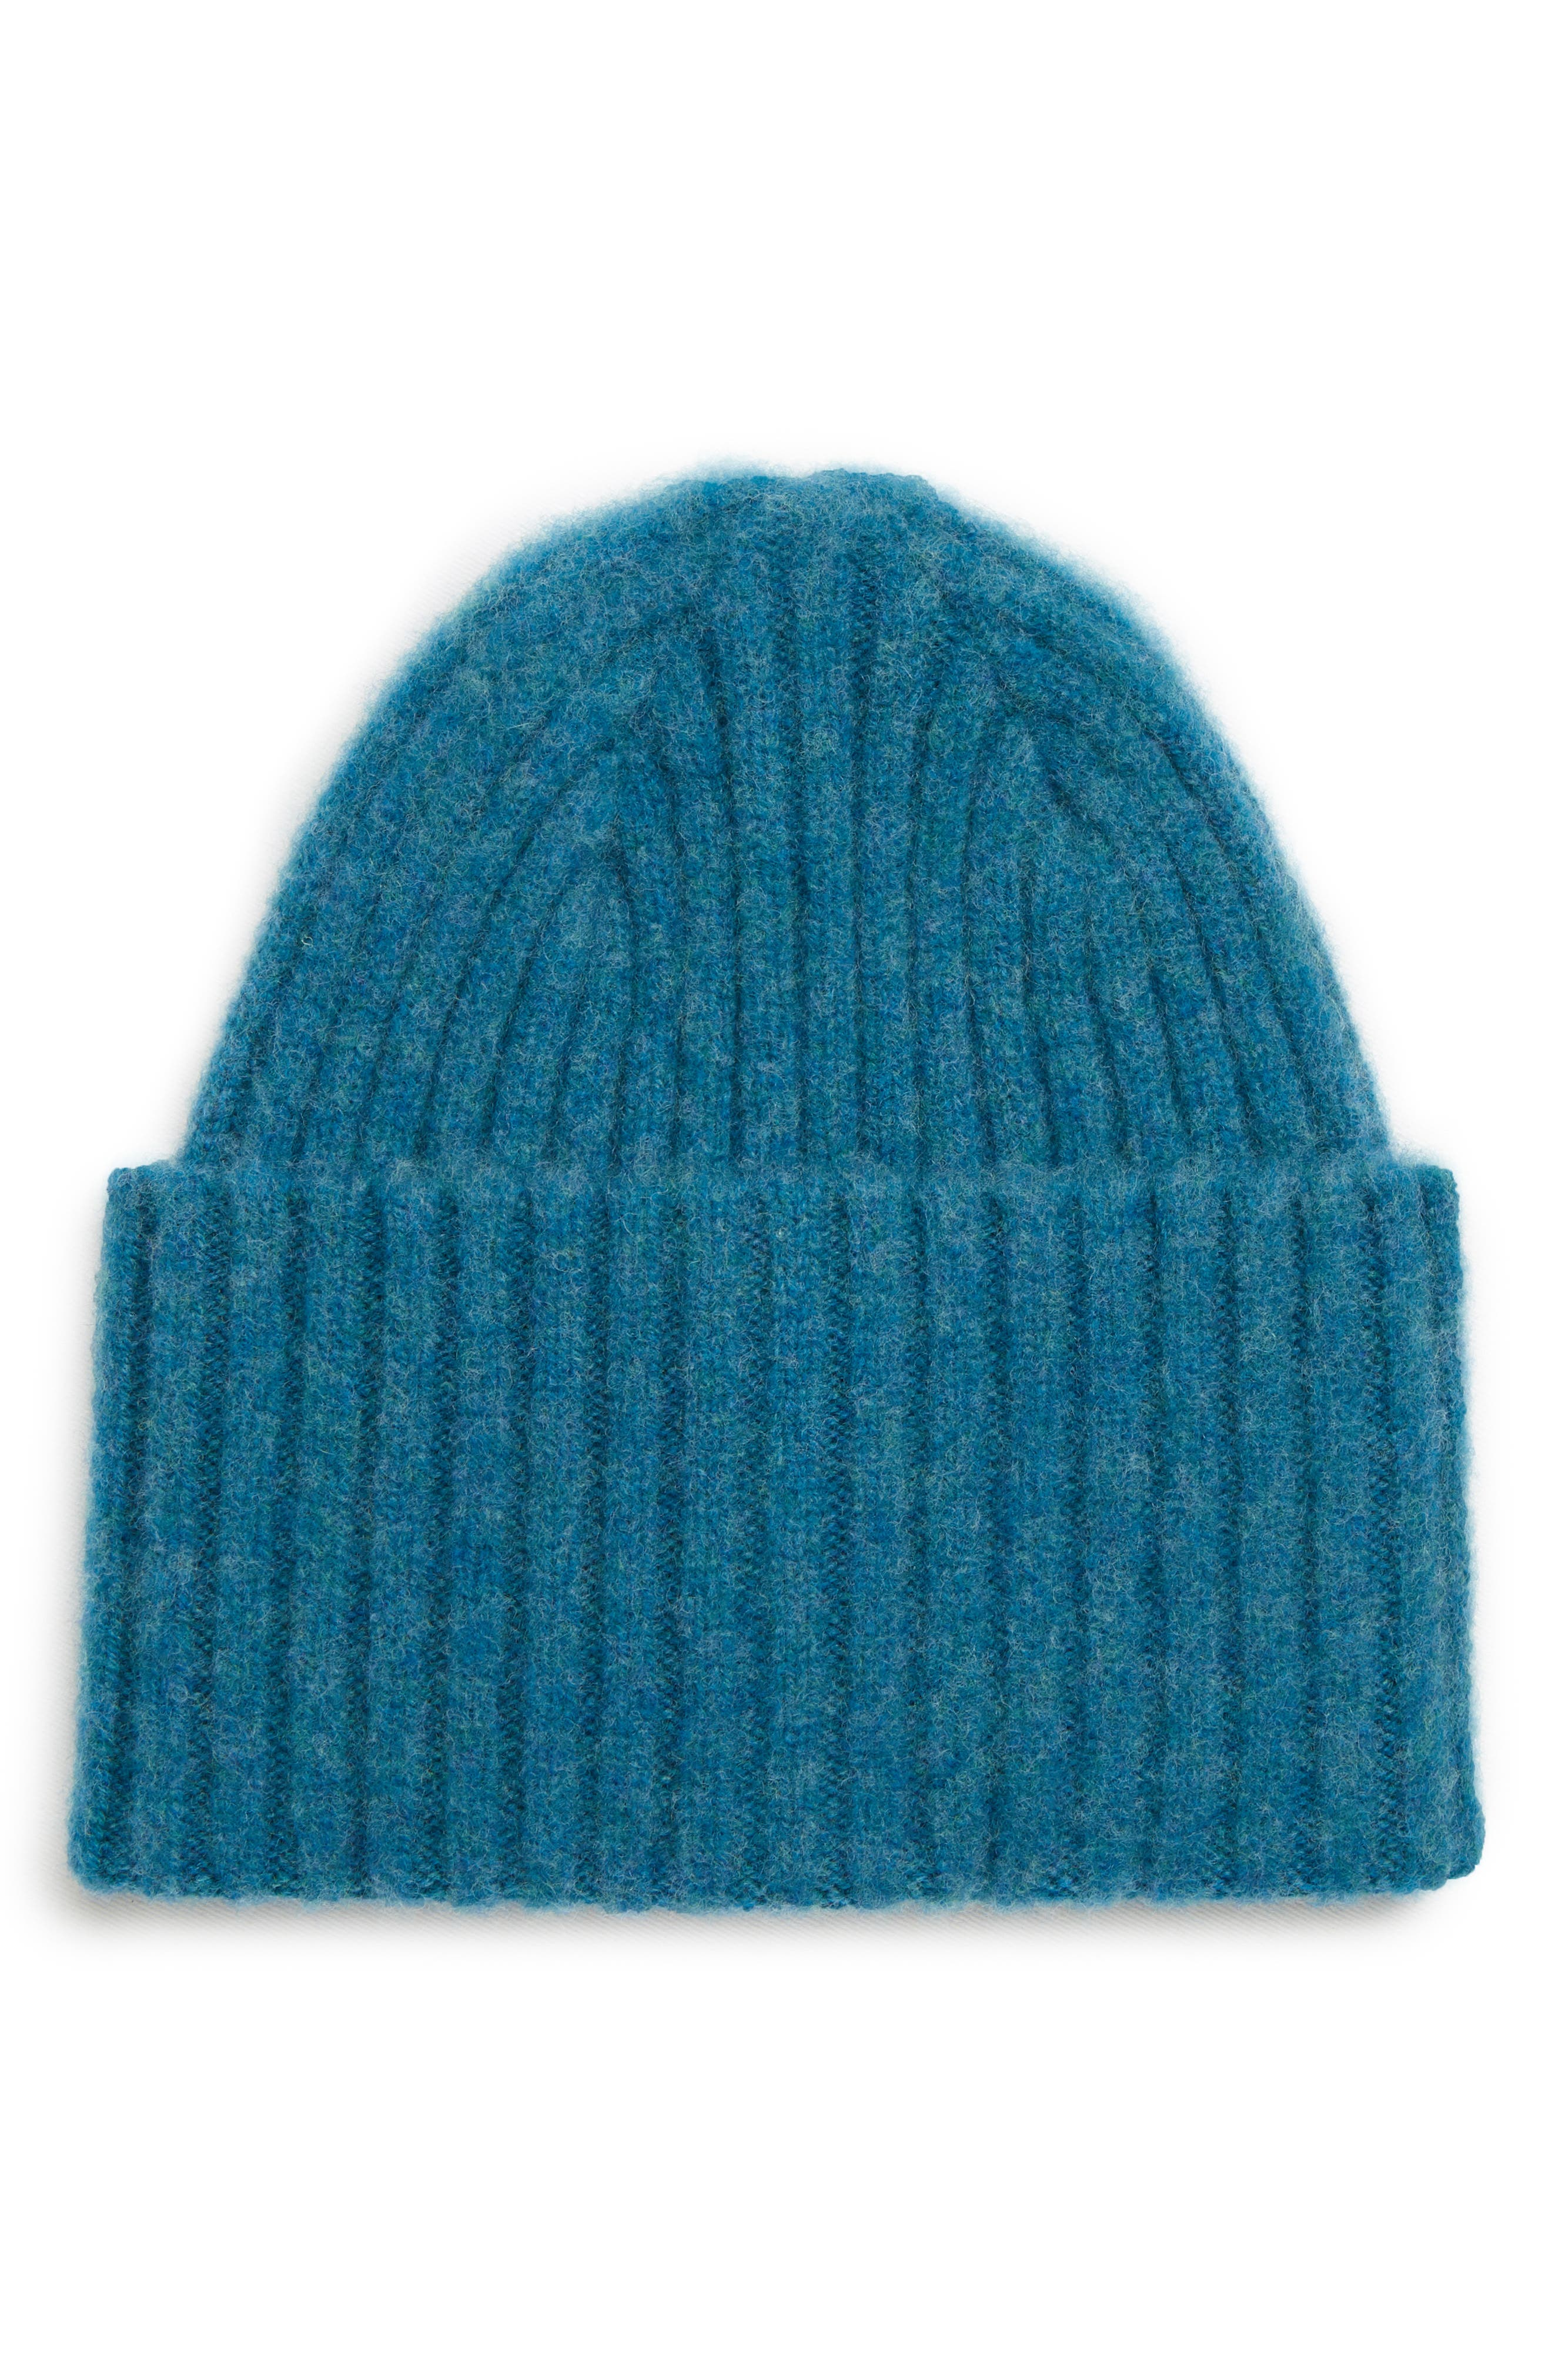 Drakes Brushed Wool Beanie,                             Main thumbnail 1, color,                             BLUE